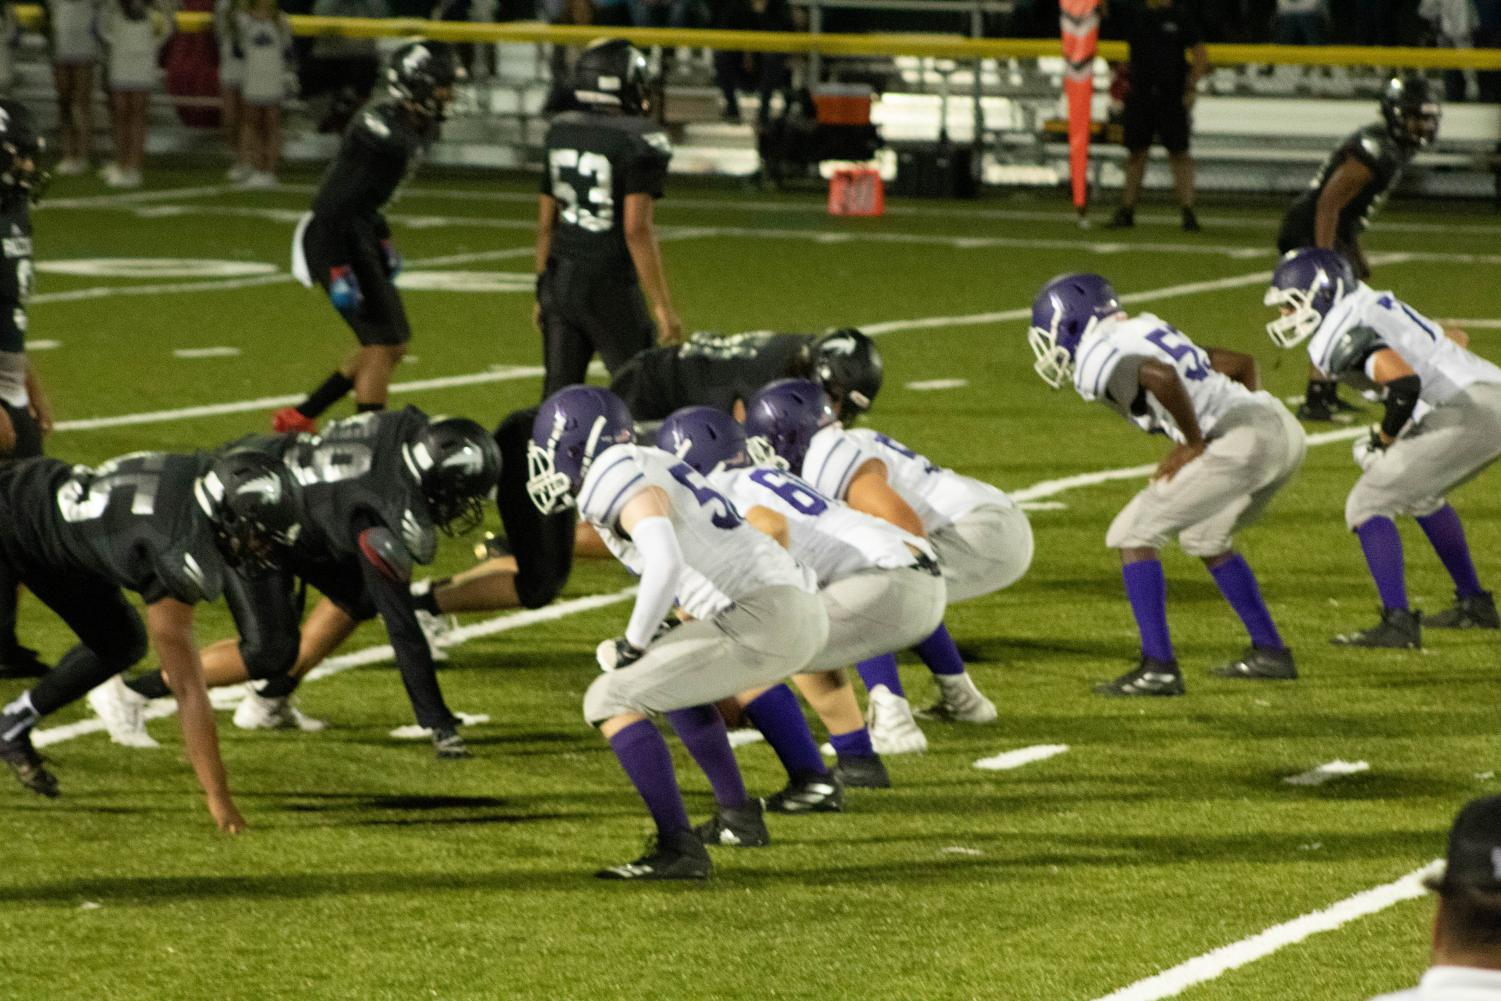 In a Remarkable Blackout Game, CRLS Scores 47 Points